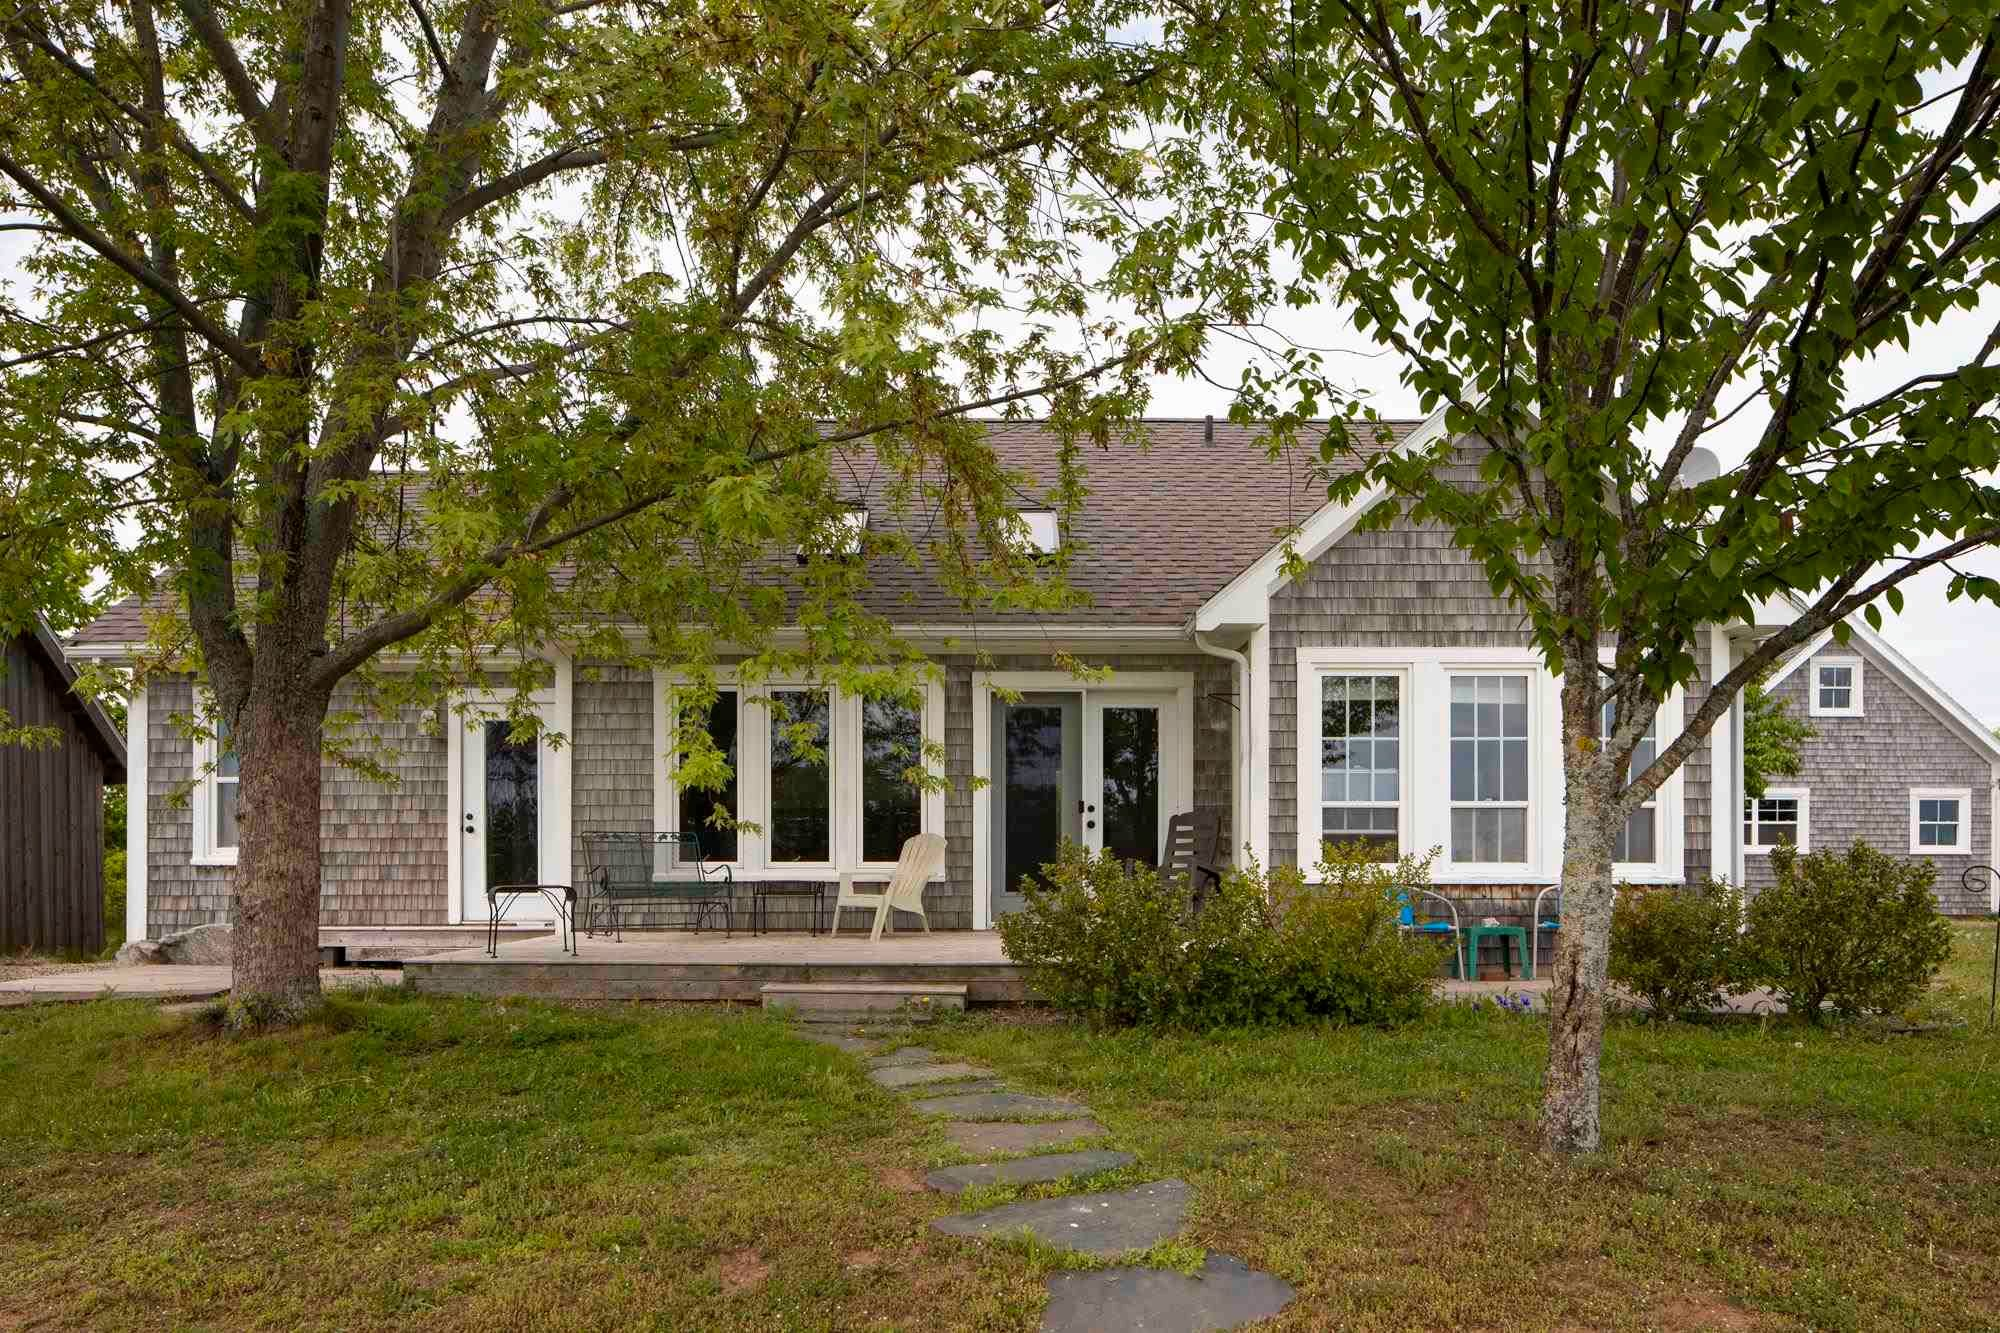 Main Photo: 480 Canard Street in Port Williams: 404-Kings County Residential for sale (Annapolis Valley)  : MLS®# 202114246